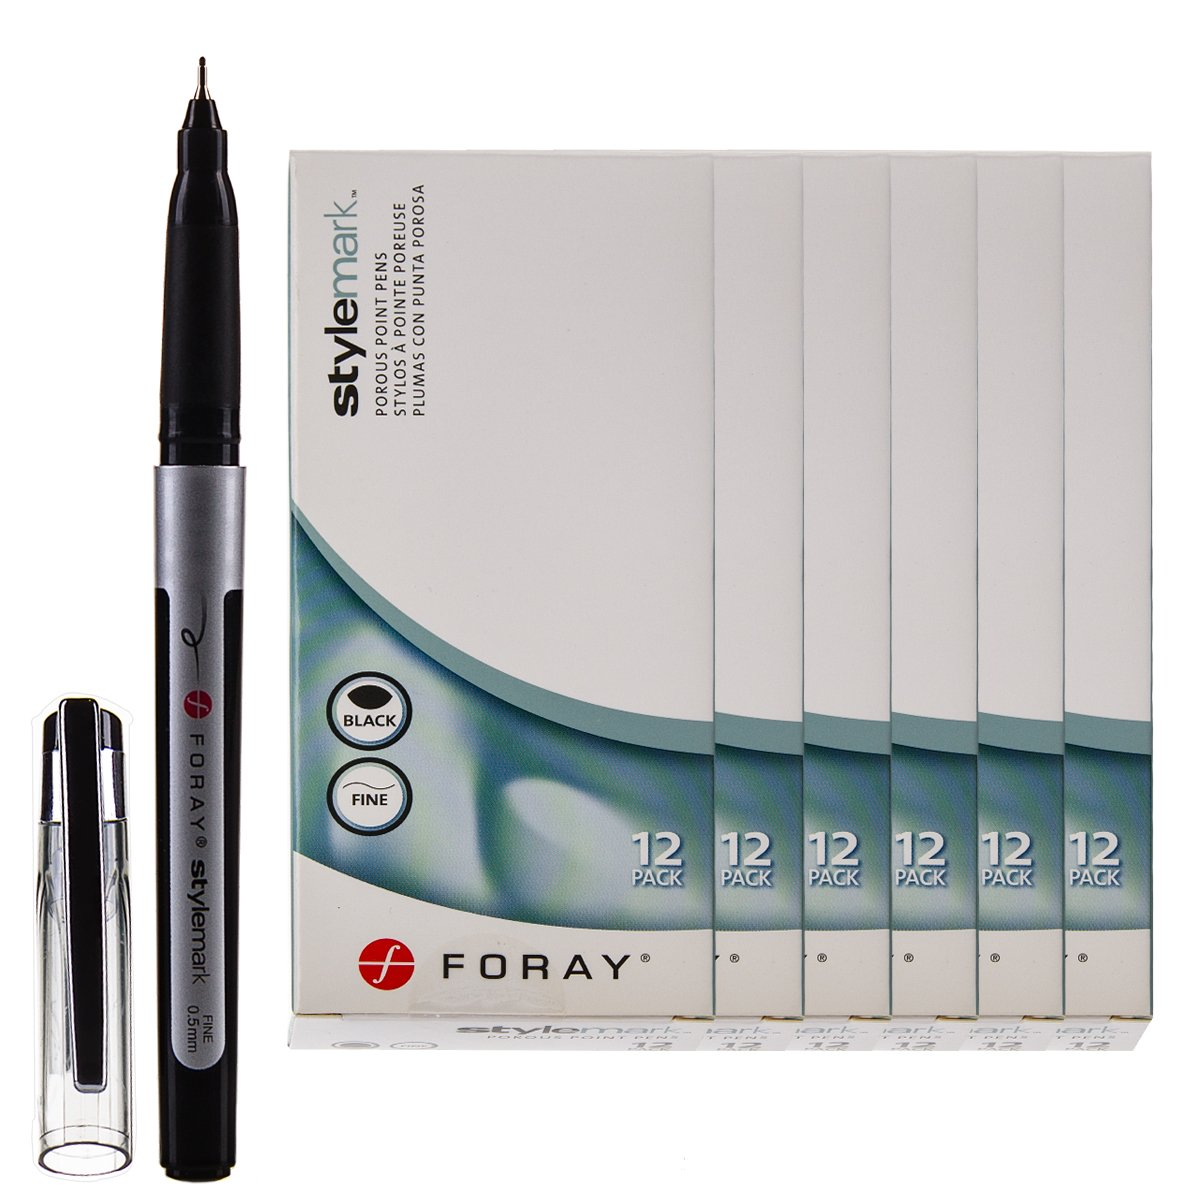 Foray Stylemark 72 Pack Porous Point Pens Fine Line 0.5mm Tip Black Ink Smooth Writing Marker Set